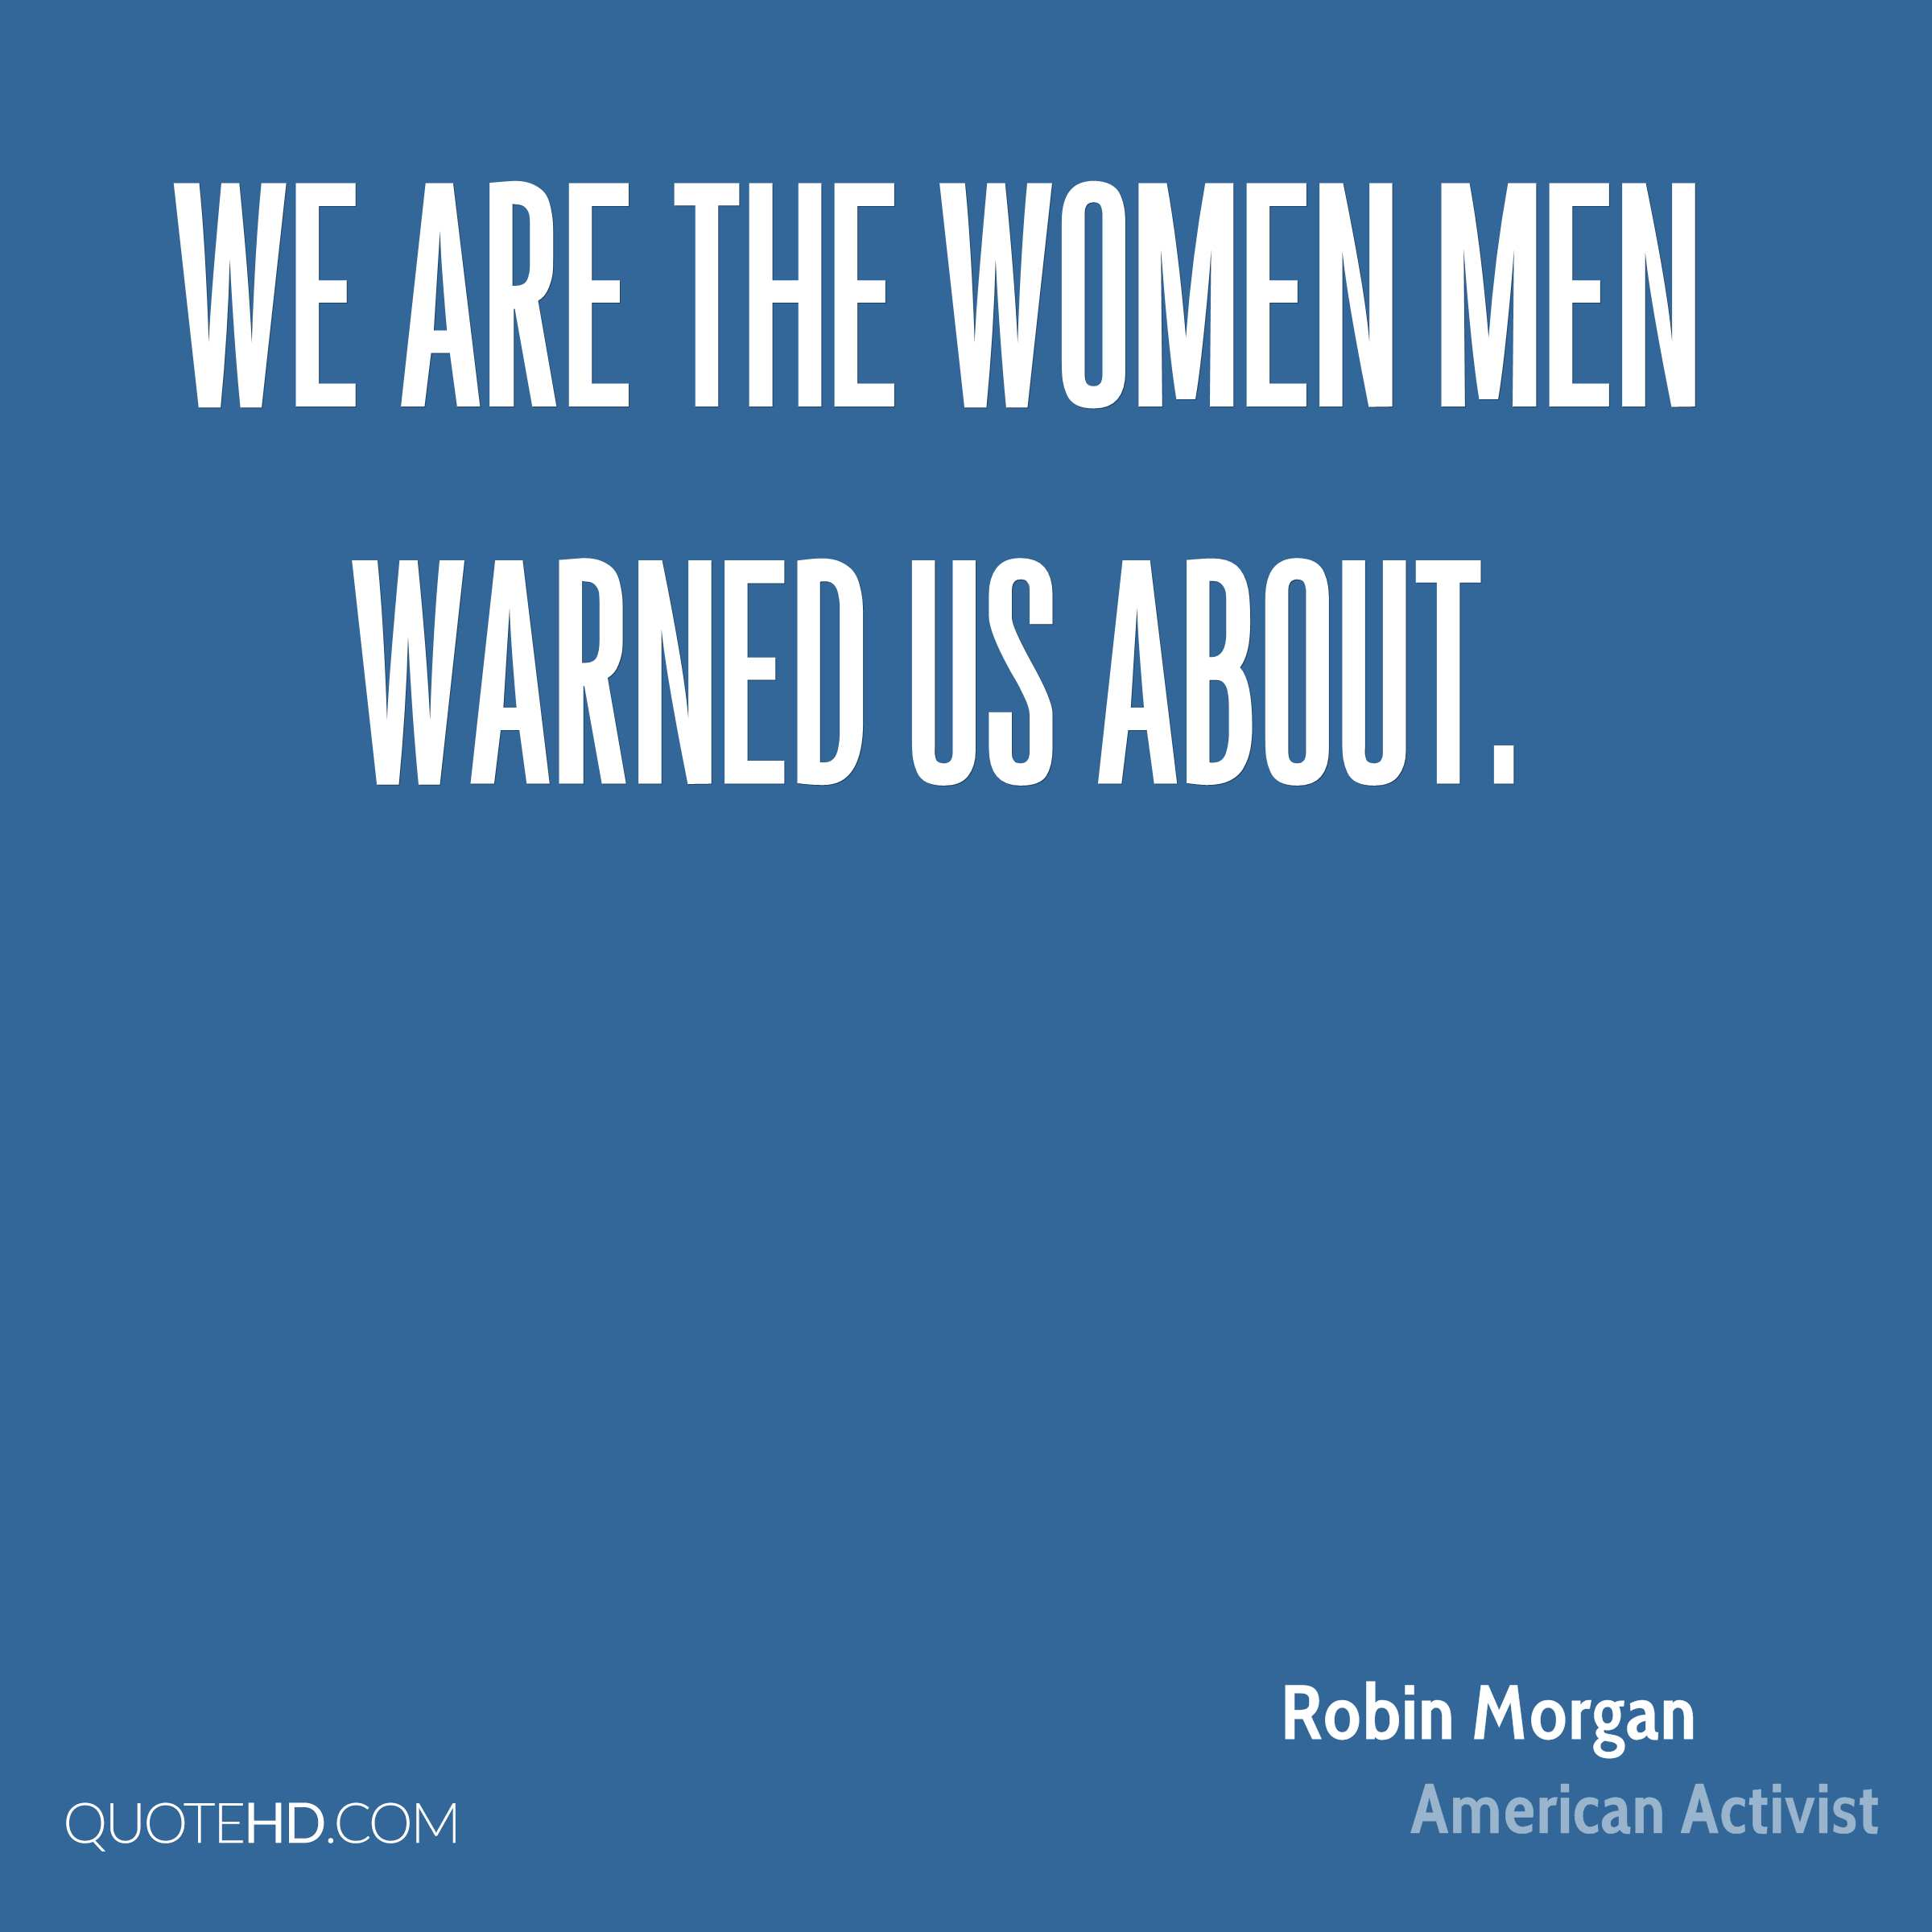 We are the women men warned us about.